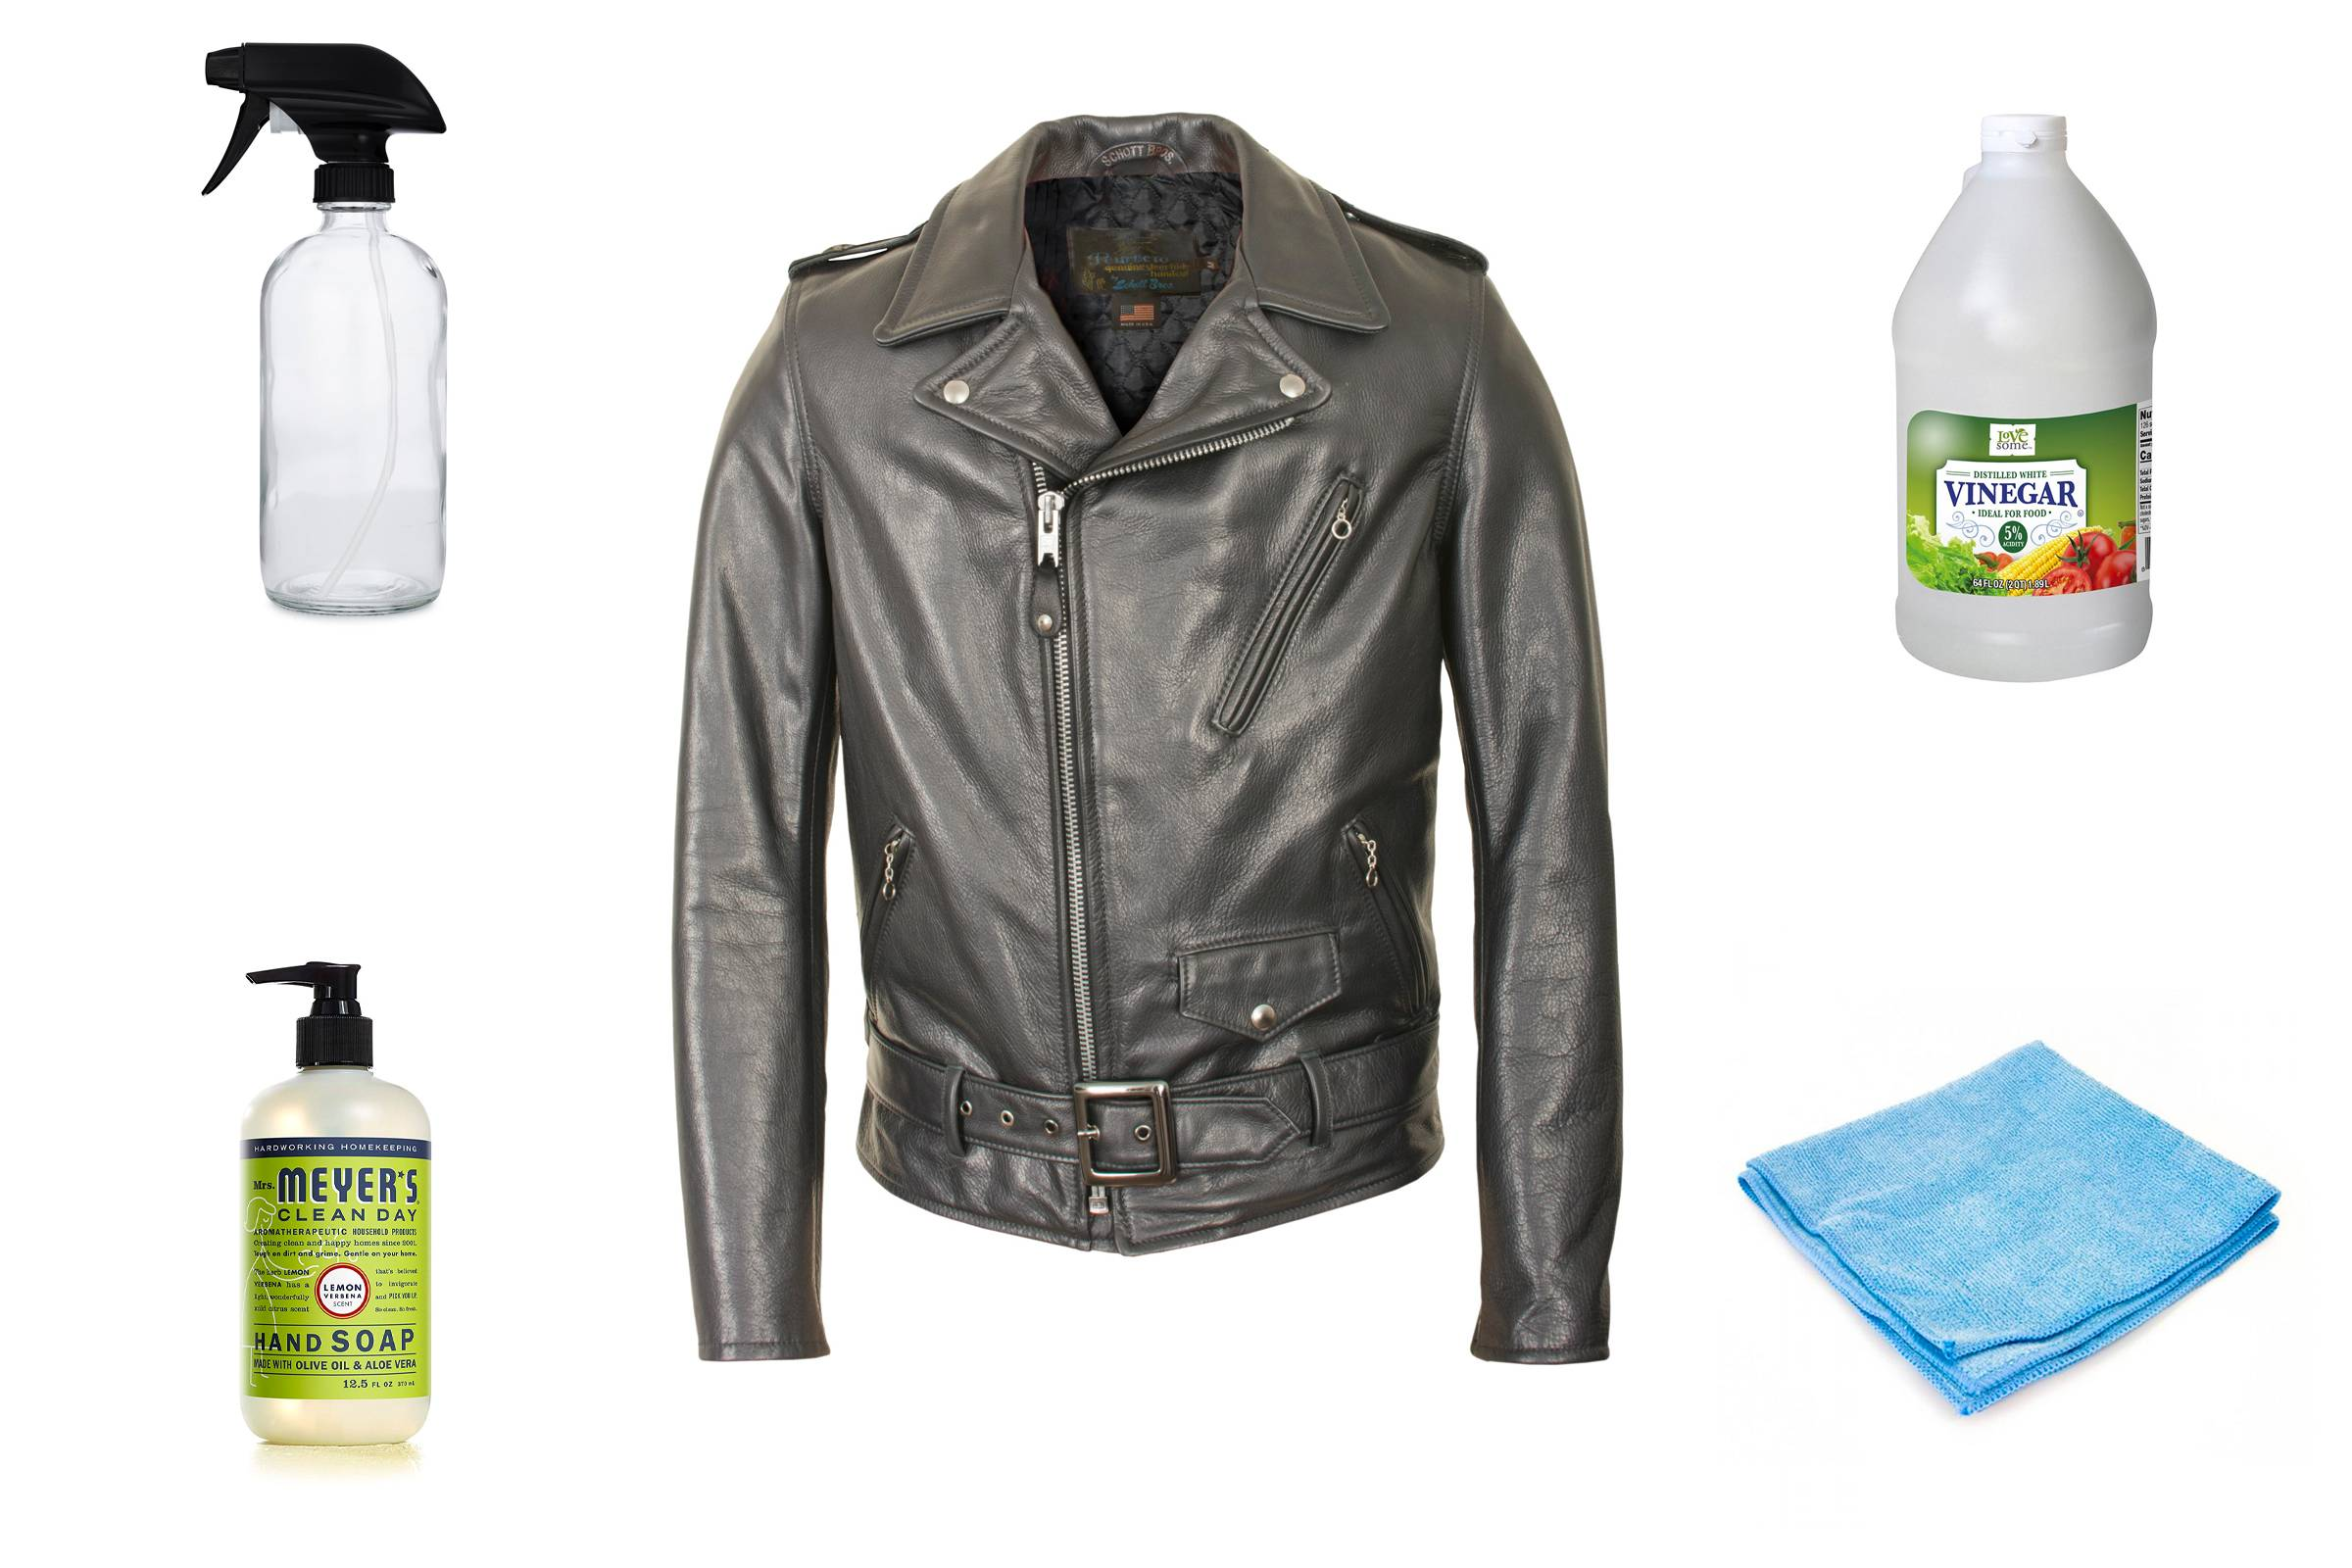 Removing Stains from Your Leather Jacket